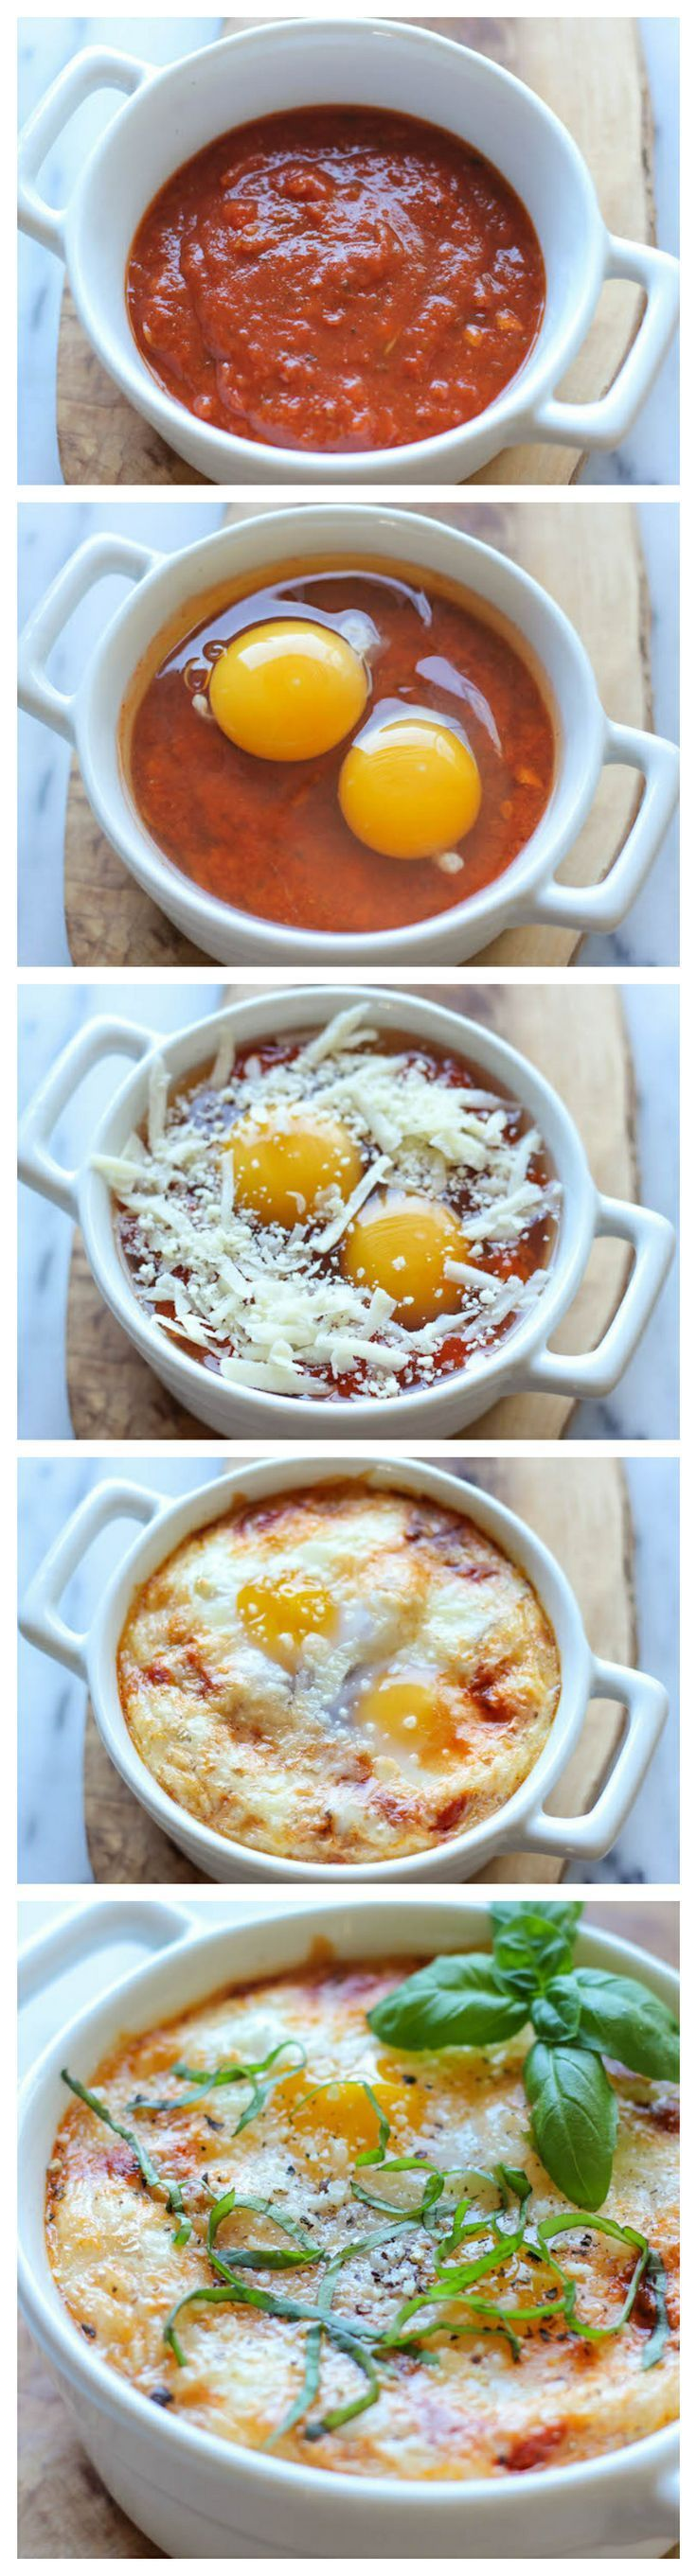 It just takes 15 minutes to make this amazing breakfast!